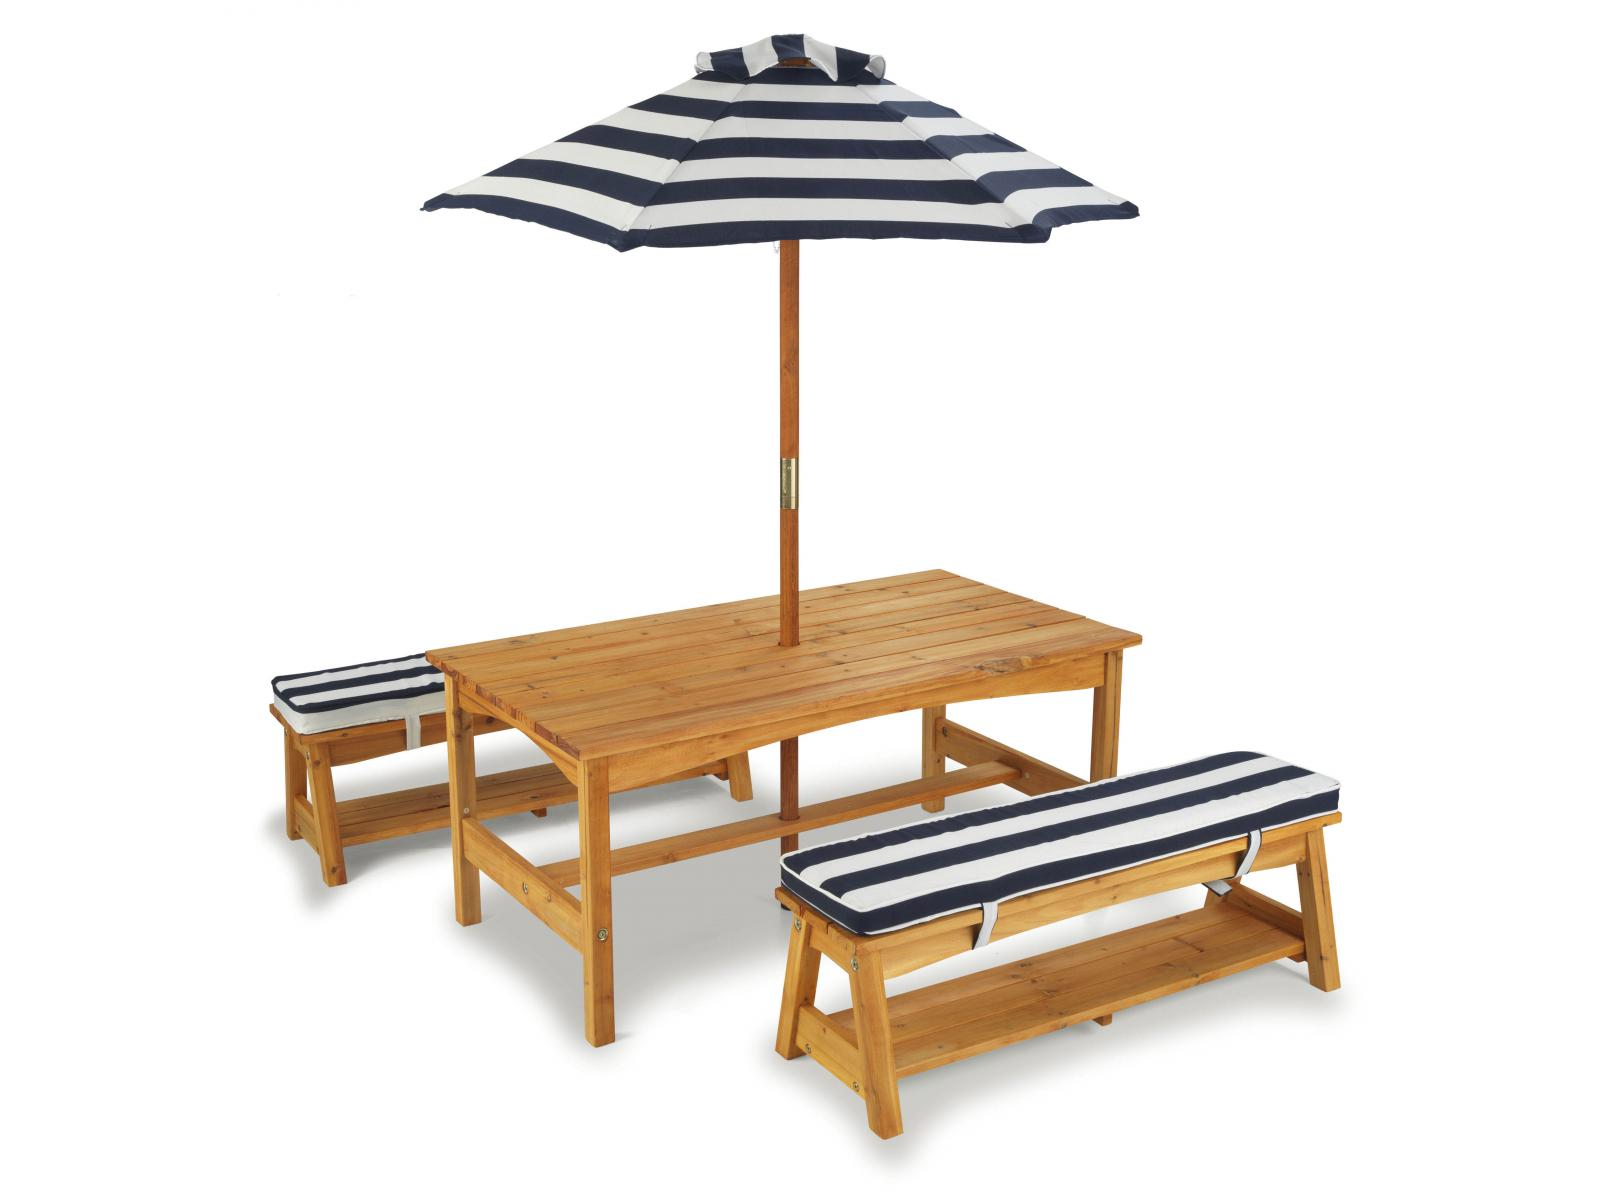 kidkraft ensemble table et bancs rembourr s d 39 ext rieur avec parasol. Black Bedroom Furniture Sets. Home Design Ideas